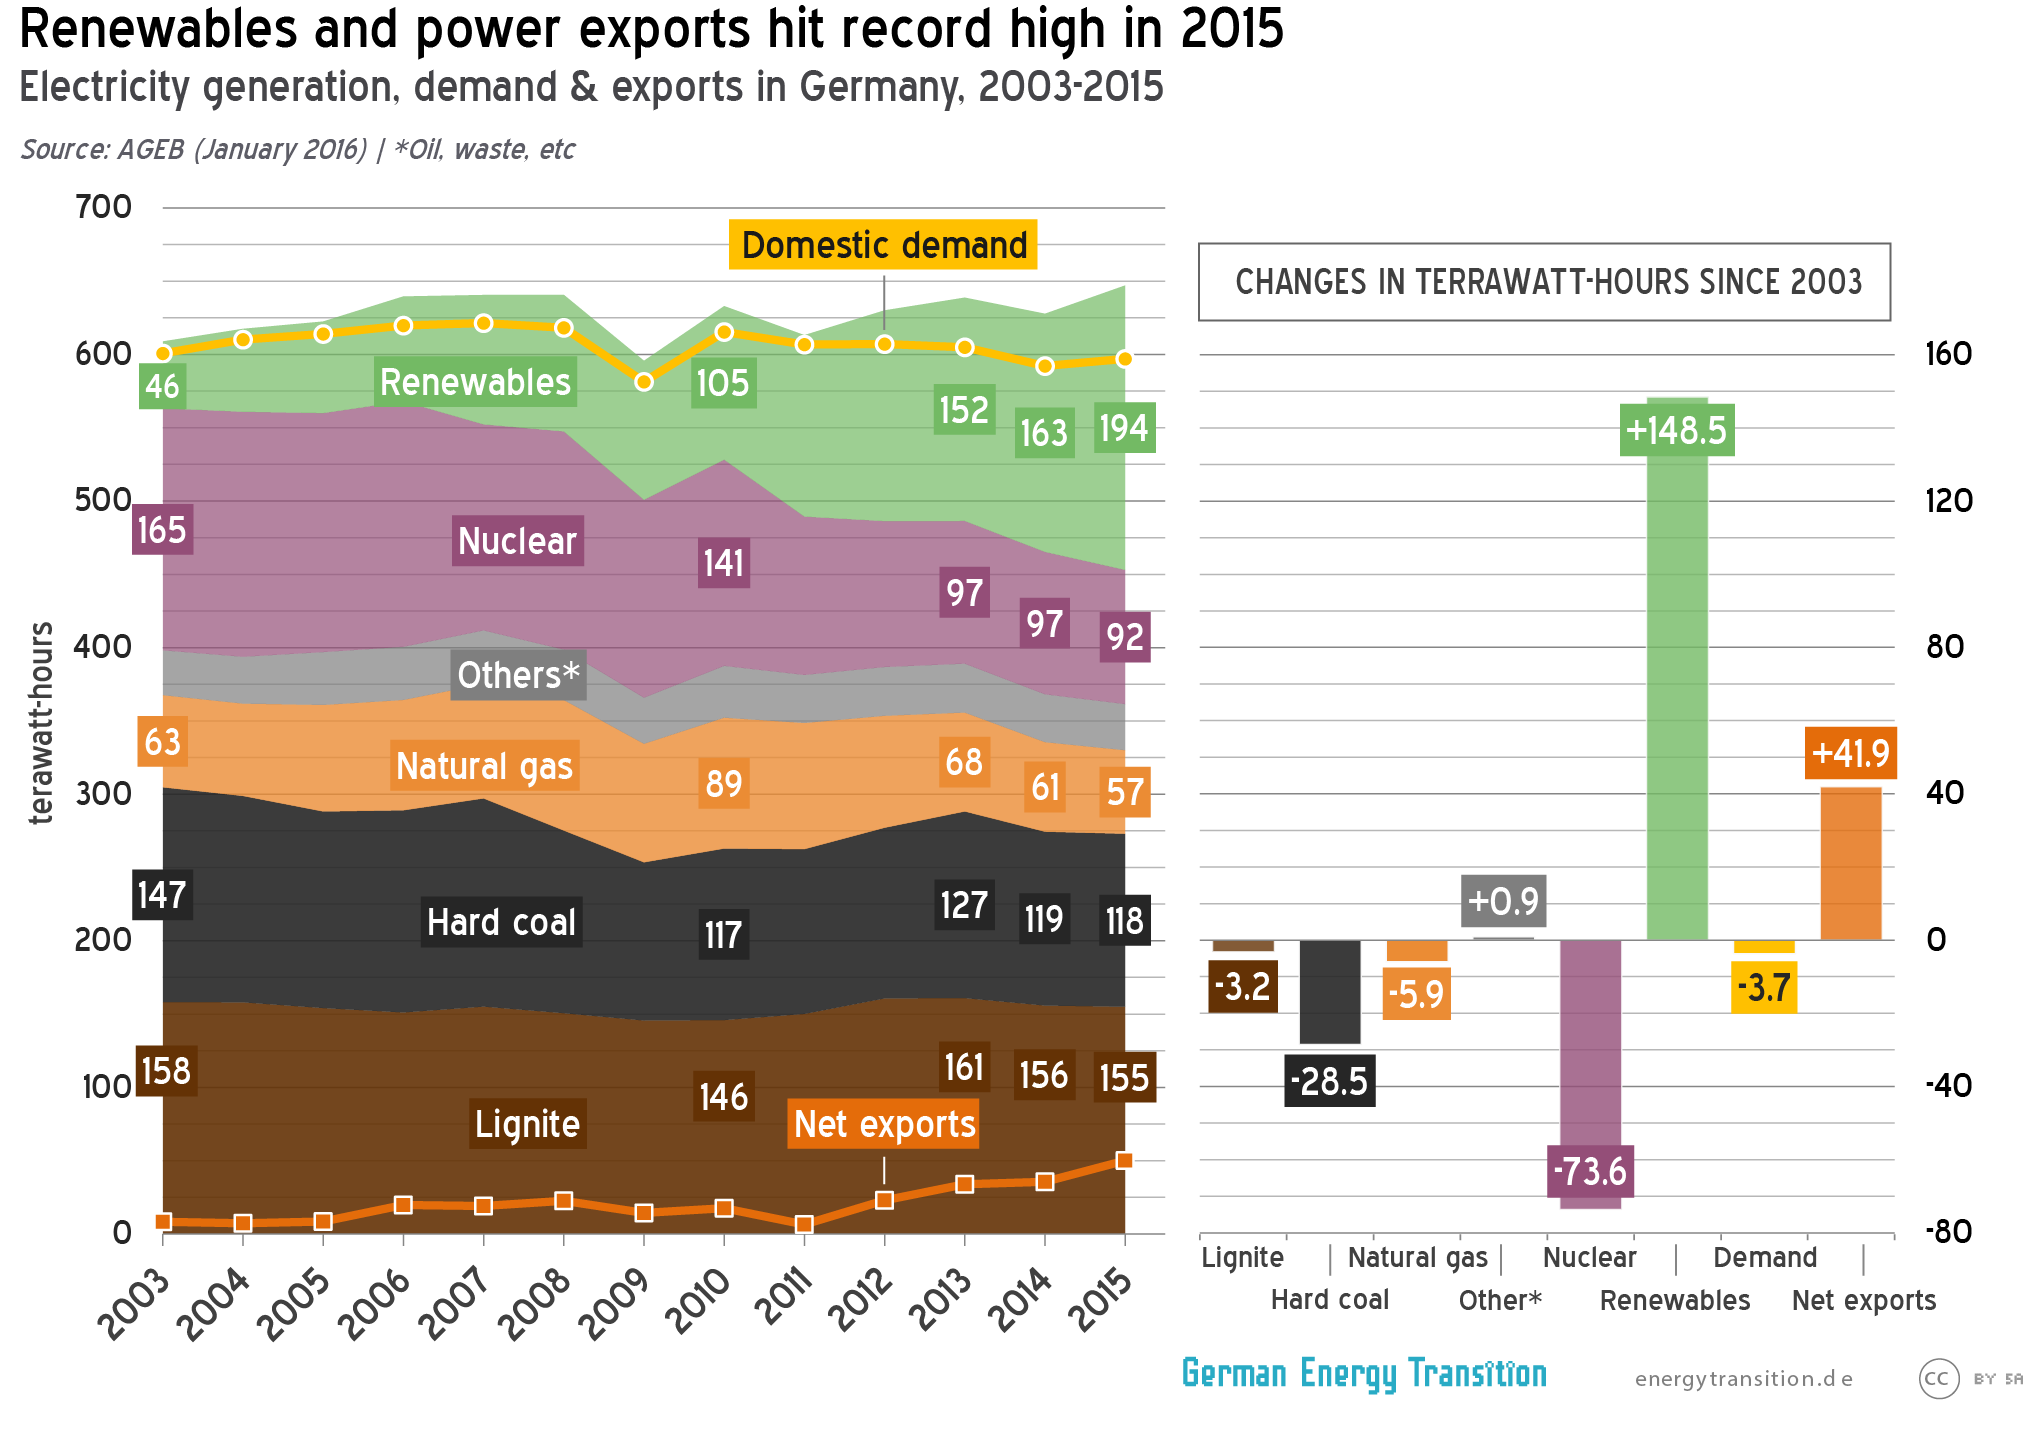 Just a decade ago, 15 years of planning (like at Hinkley) would have seemed unspectacular in the energy sector, where plants often run for half a century. But solar and wind can be built quickly, which means foreshortened planning timeframes. Germany took only three years to replace its 8 nuclear reactors shut down in 2011.